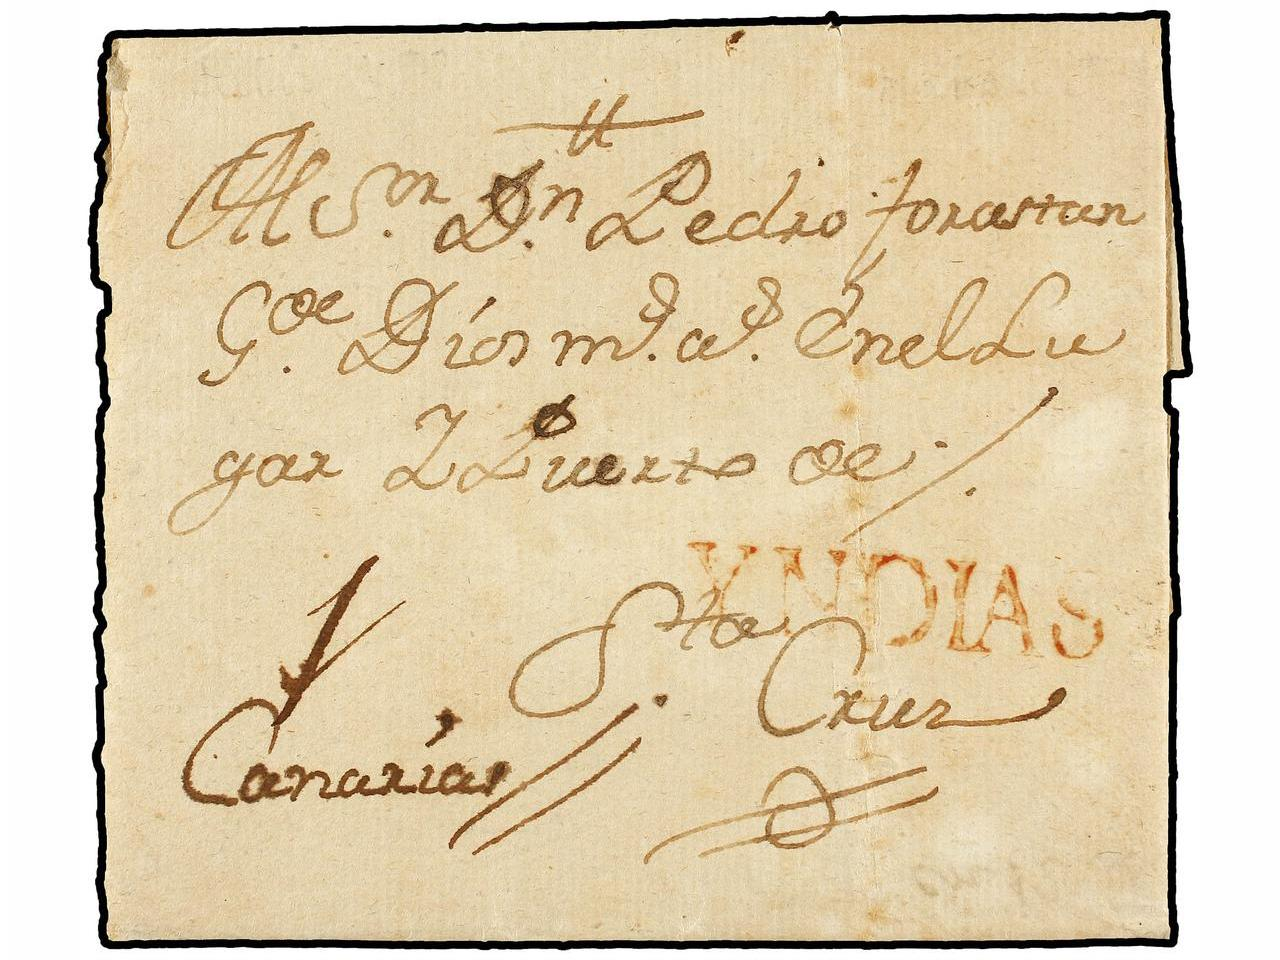 ✉ ESPAÑA. 1769 (July 18). Entire letter from HAVANA to SANTA